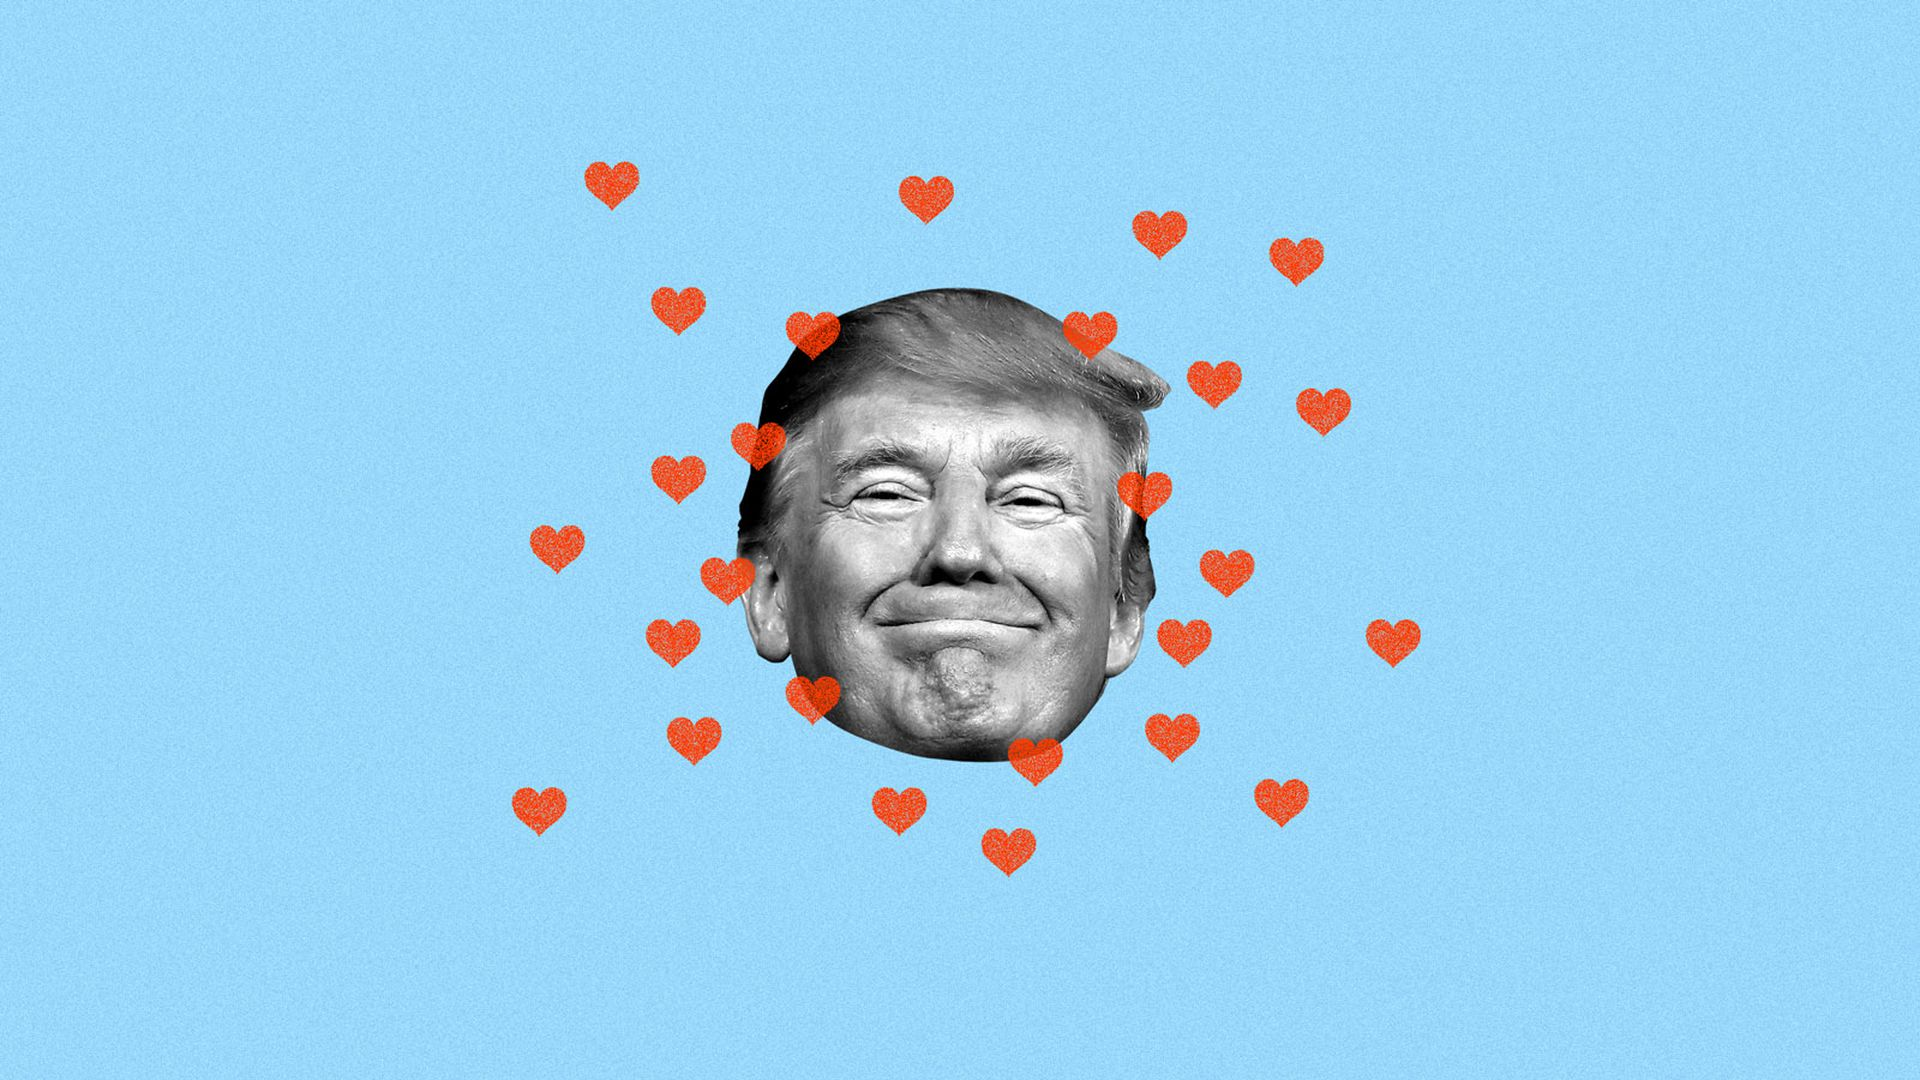 illustration of trump's face with little red hearts around it